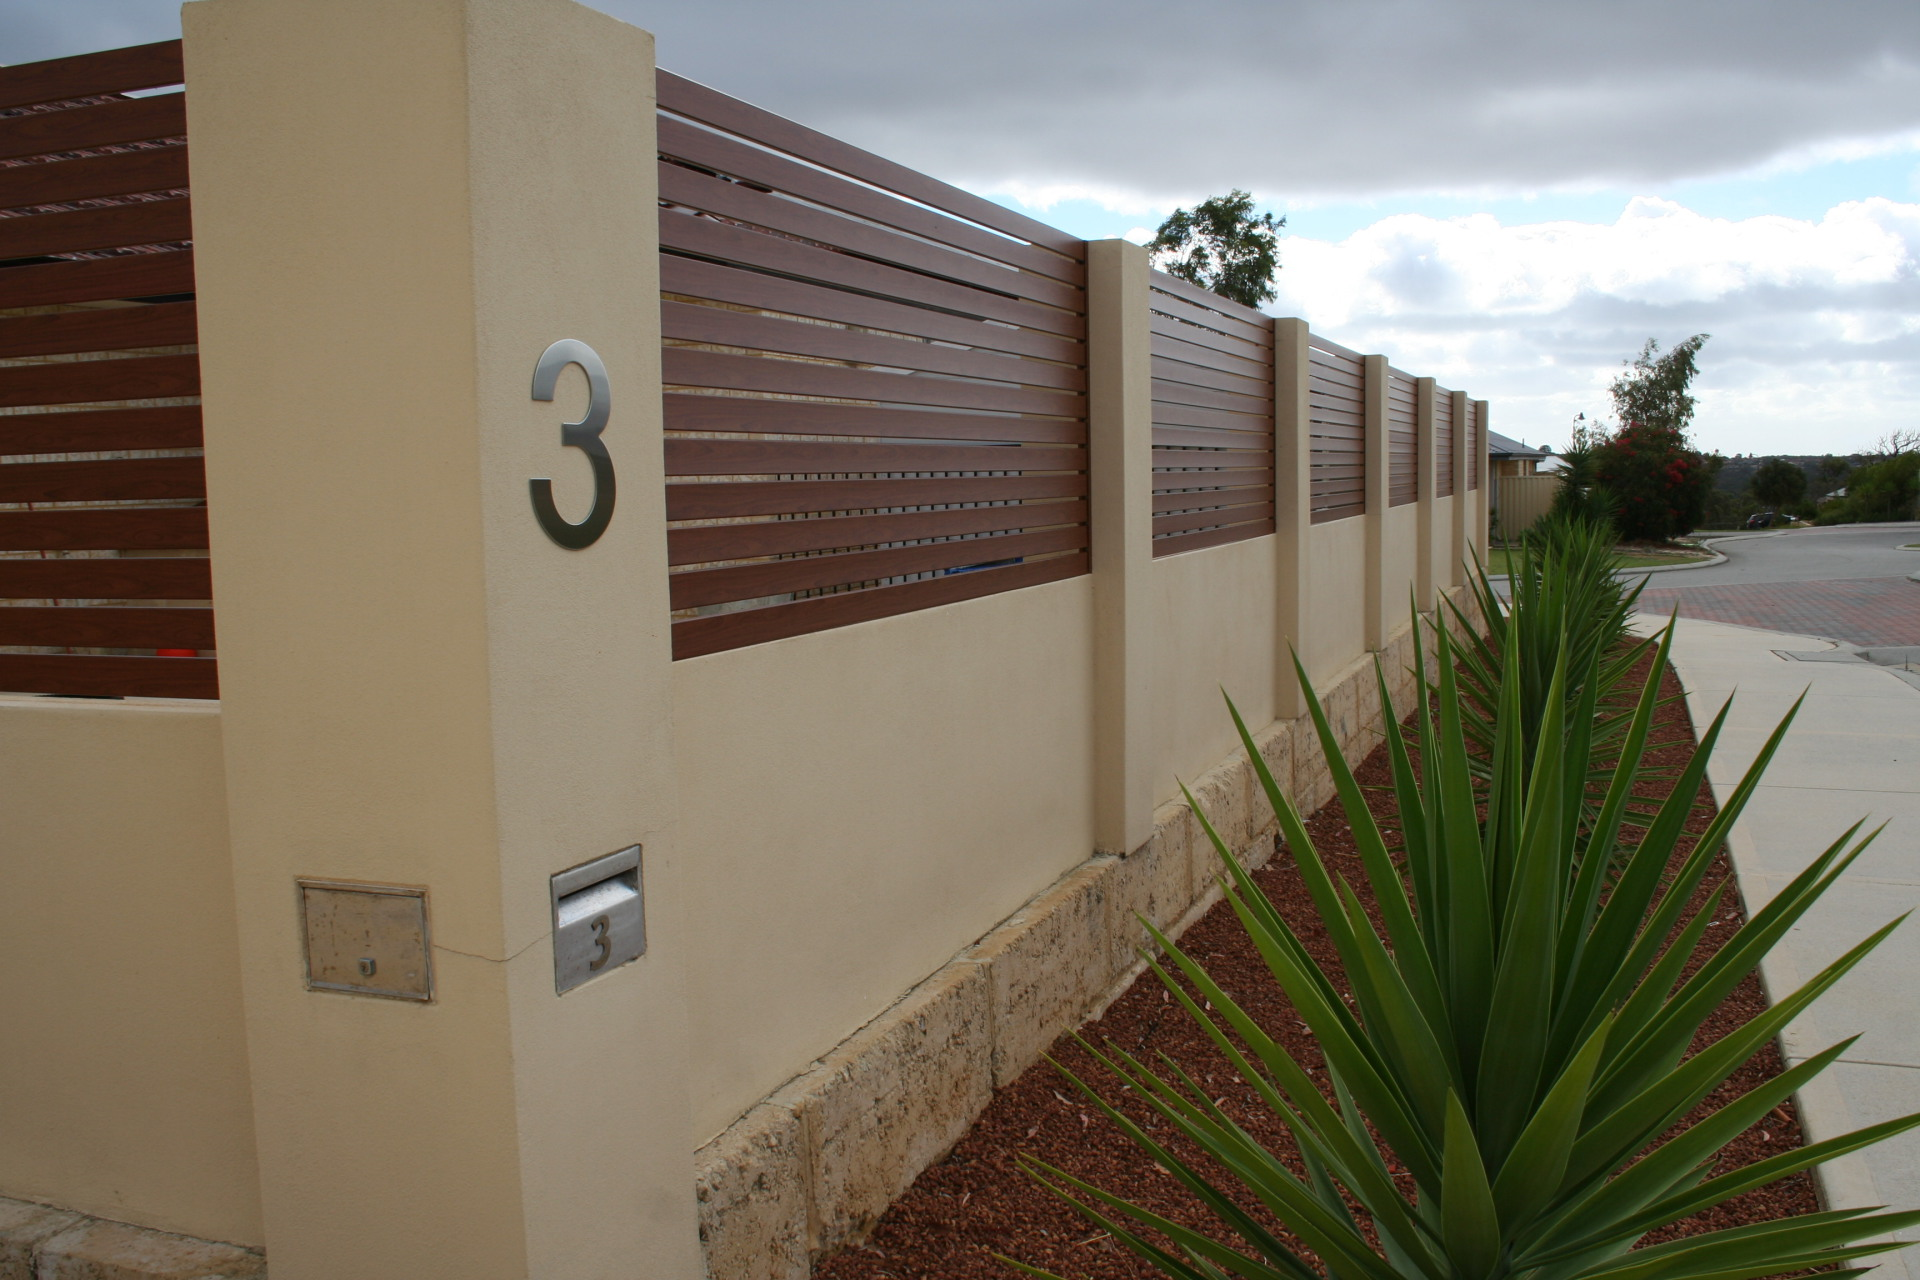 Aluminium fencing, fencing perth, slat fencing, slat gates, custom fencing, aluminium, knotwood, timber look, fecning and gates, best fencing perth